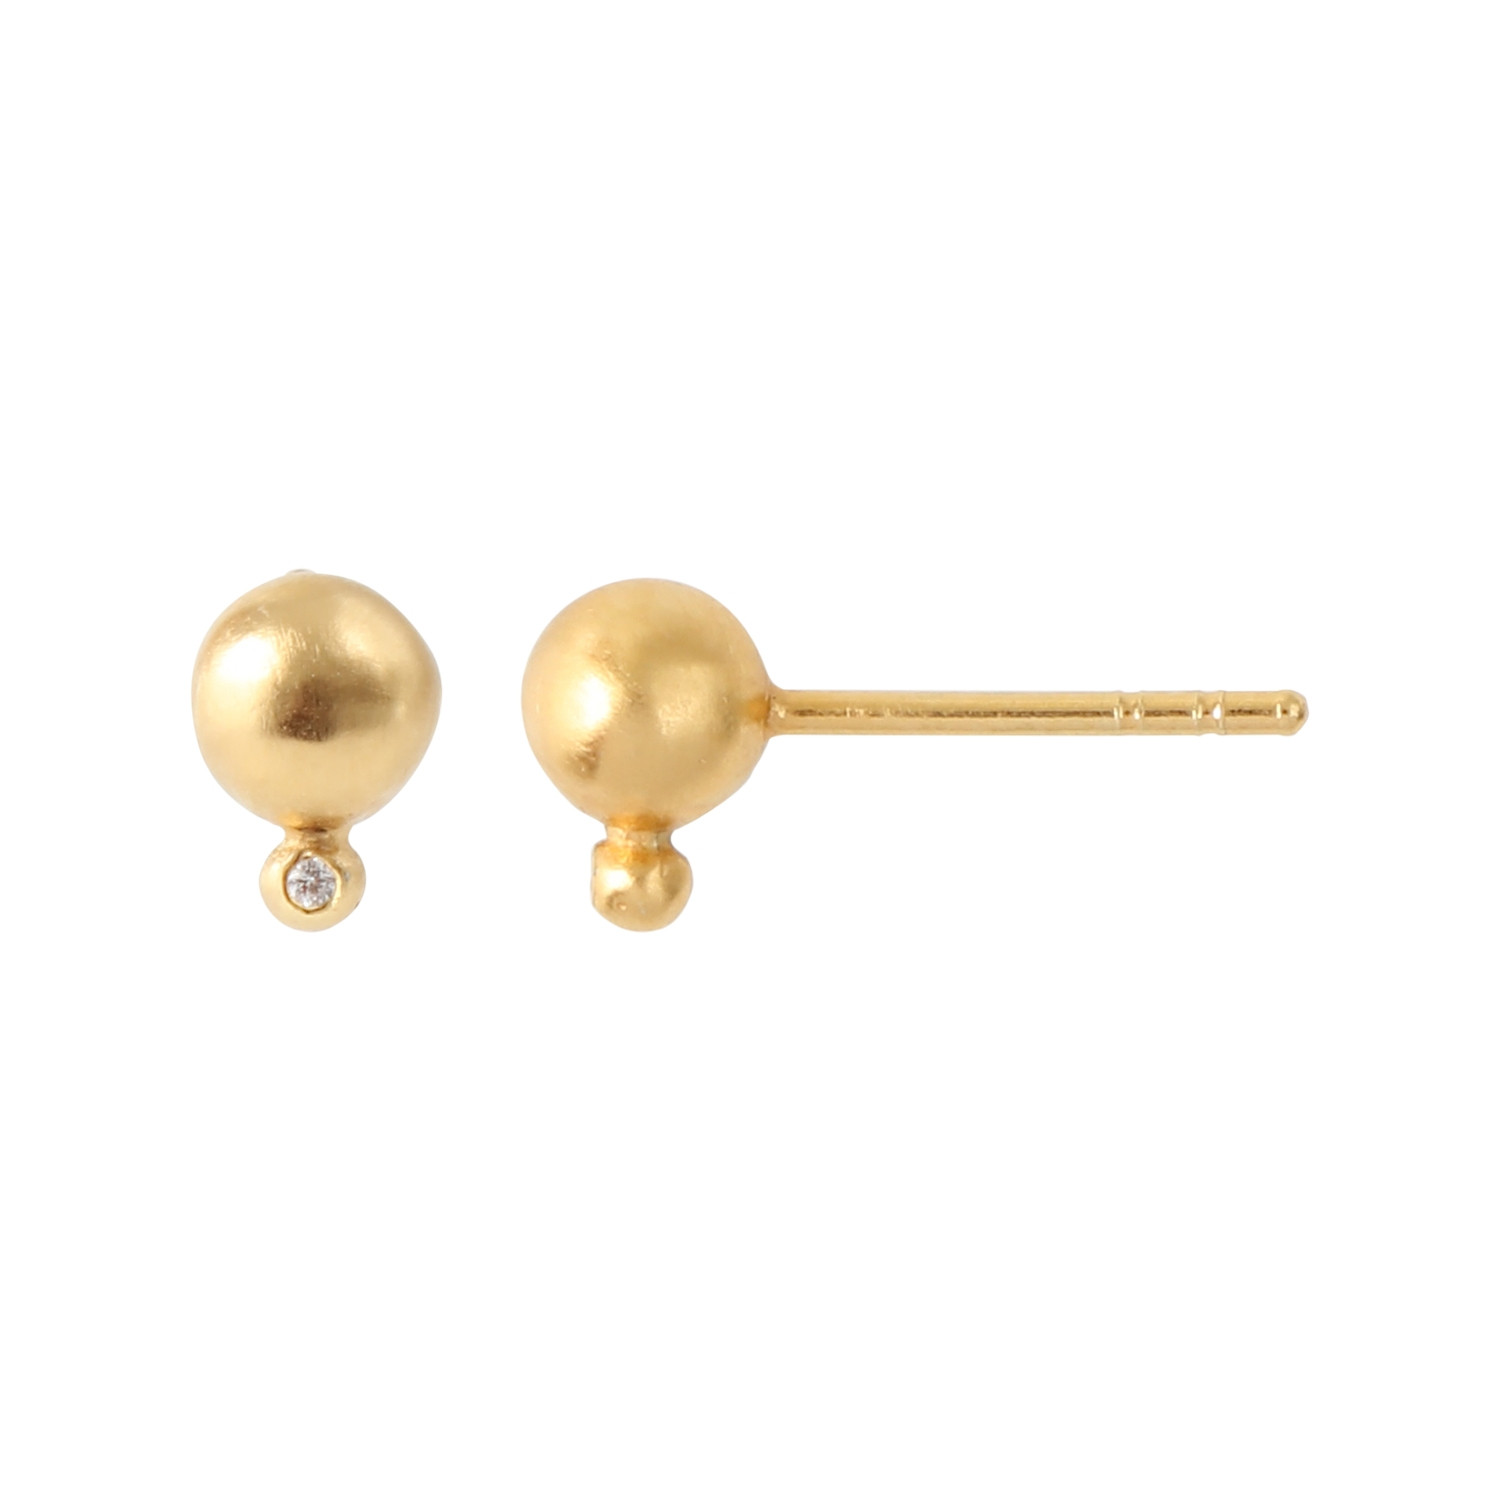 Balloon with Zircon Earring Piece - Gold